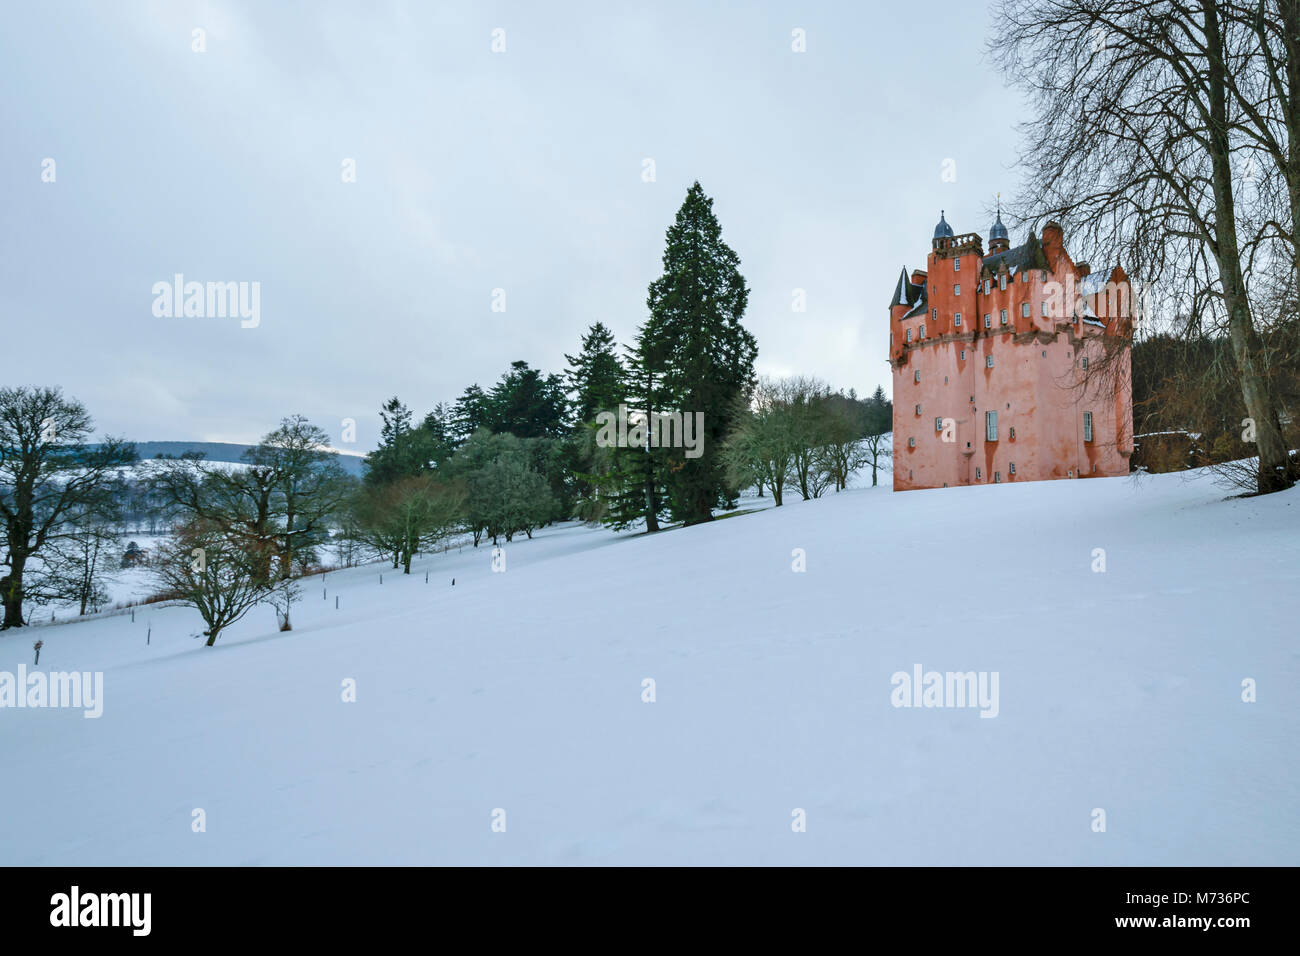 CRAIGIEVAR CASTLE ABERDEENSHIRE SCOTLAND THE PINK TOWER ON A SNOW COVERED HILL OVERLOOKING THE WINTER COUNTRYSIDE - Stock Image